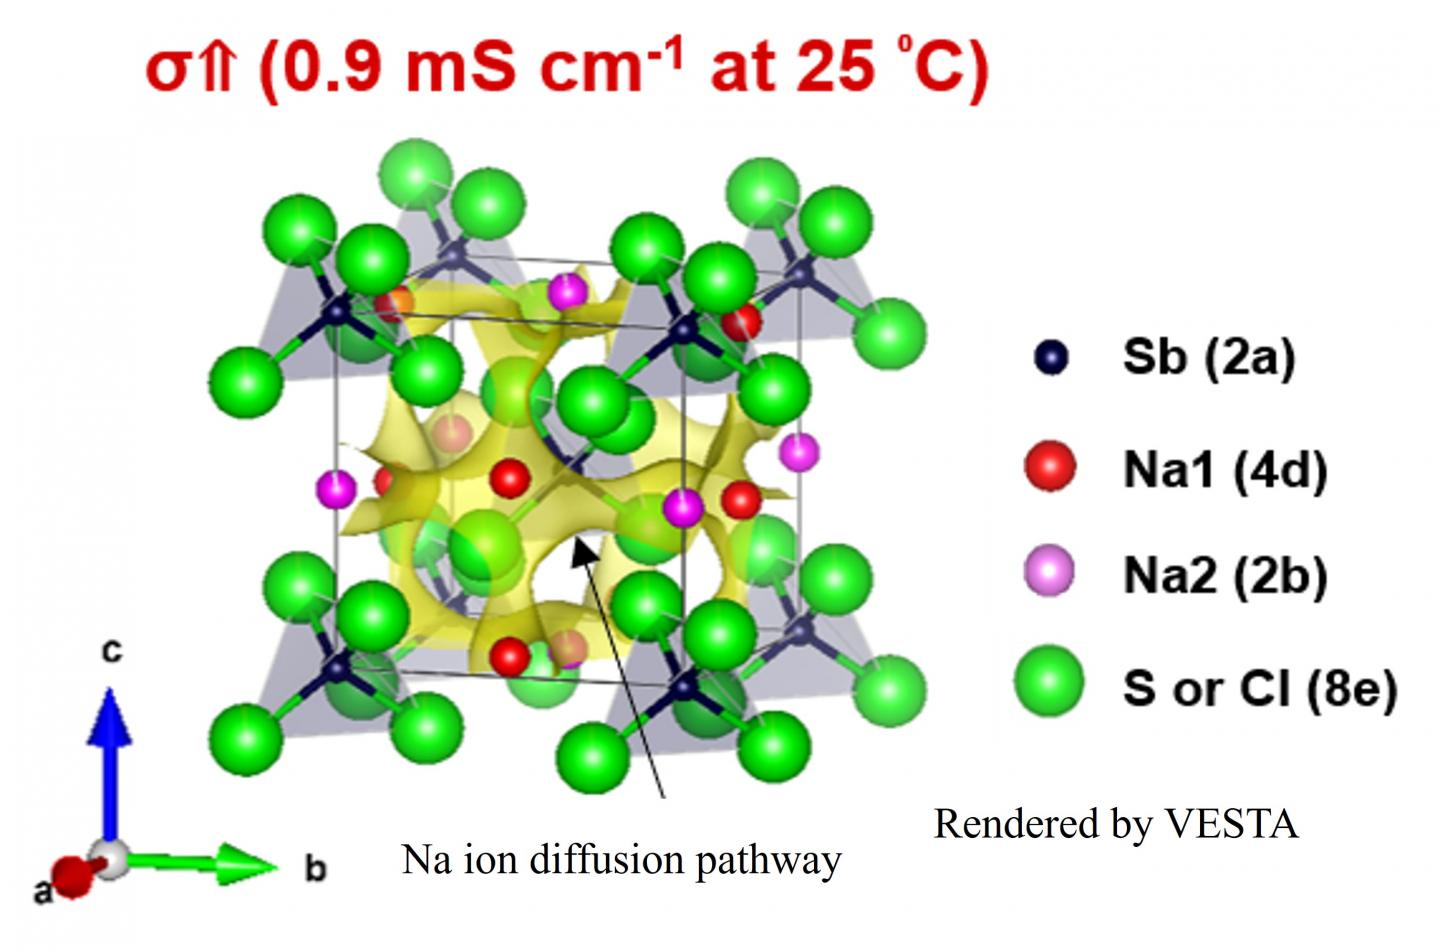 Crystal structure of Cl-substituted Na3SbS4 with ion diffusion pathway